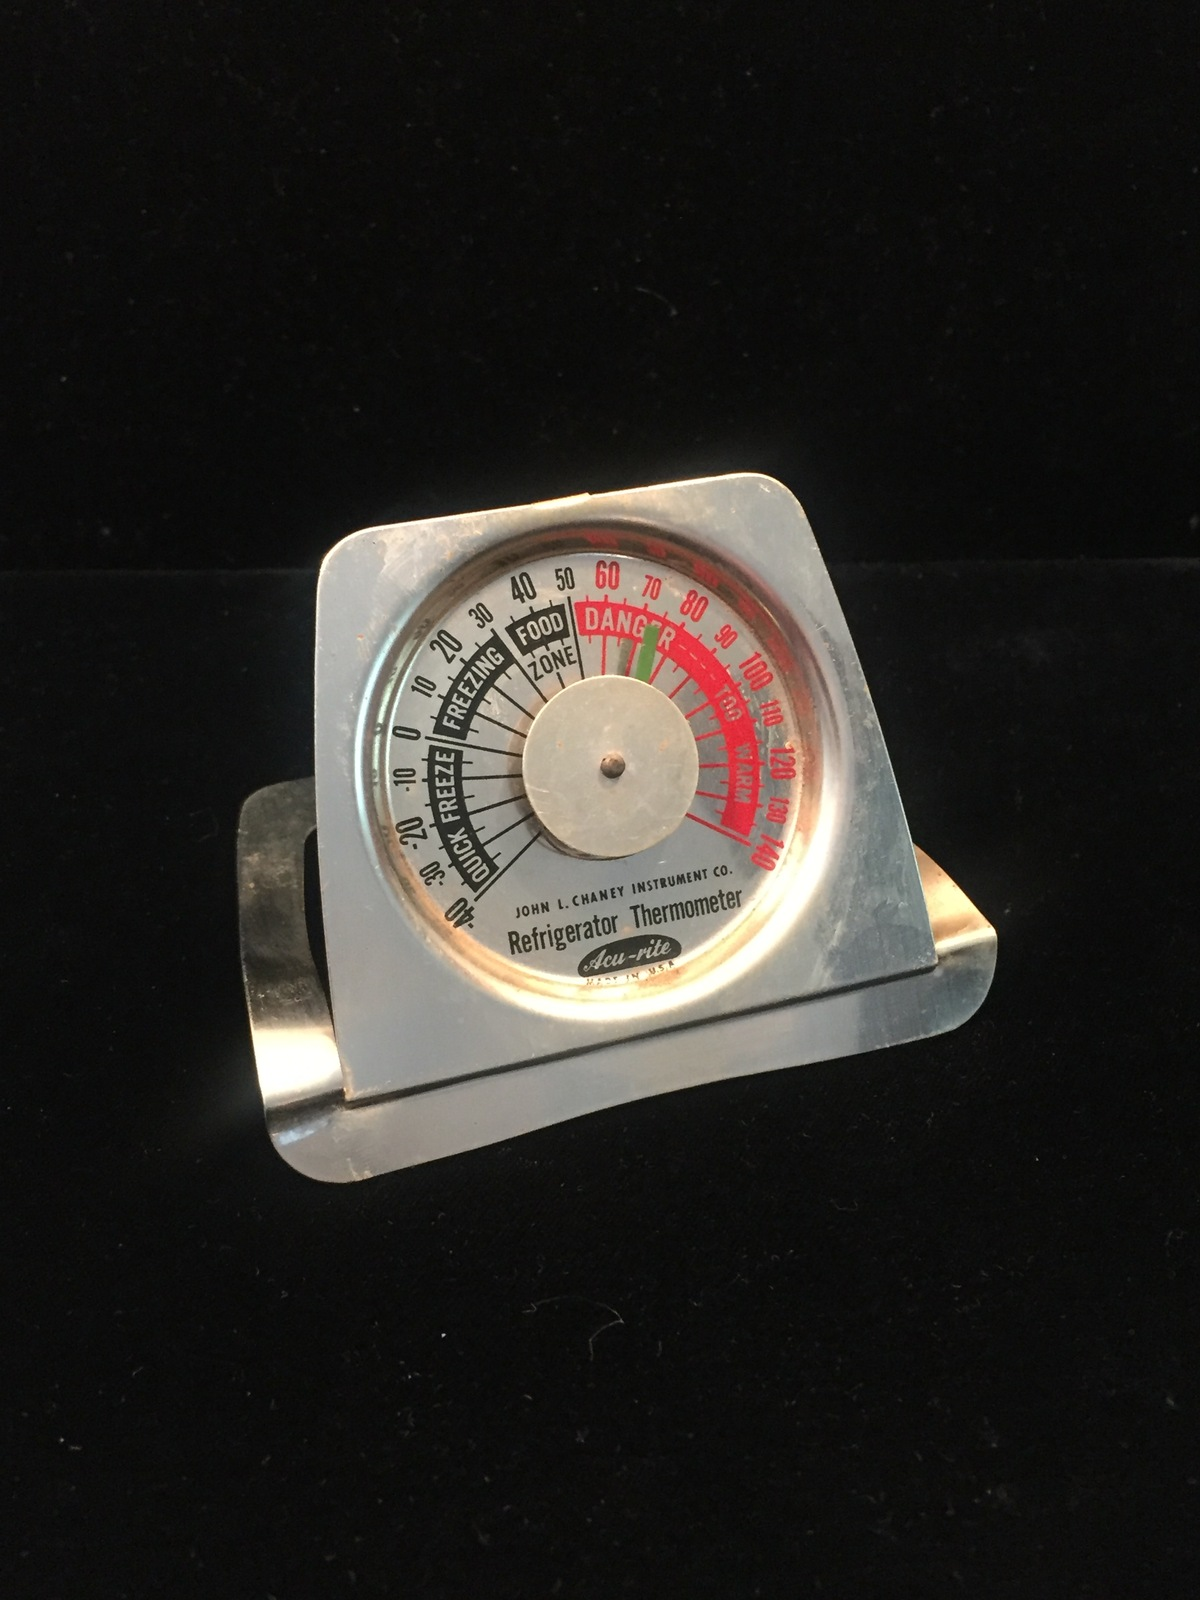 Vintage Acu-Rite refrigerator thermometer - fold up, giveaway item